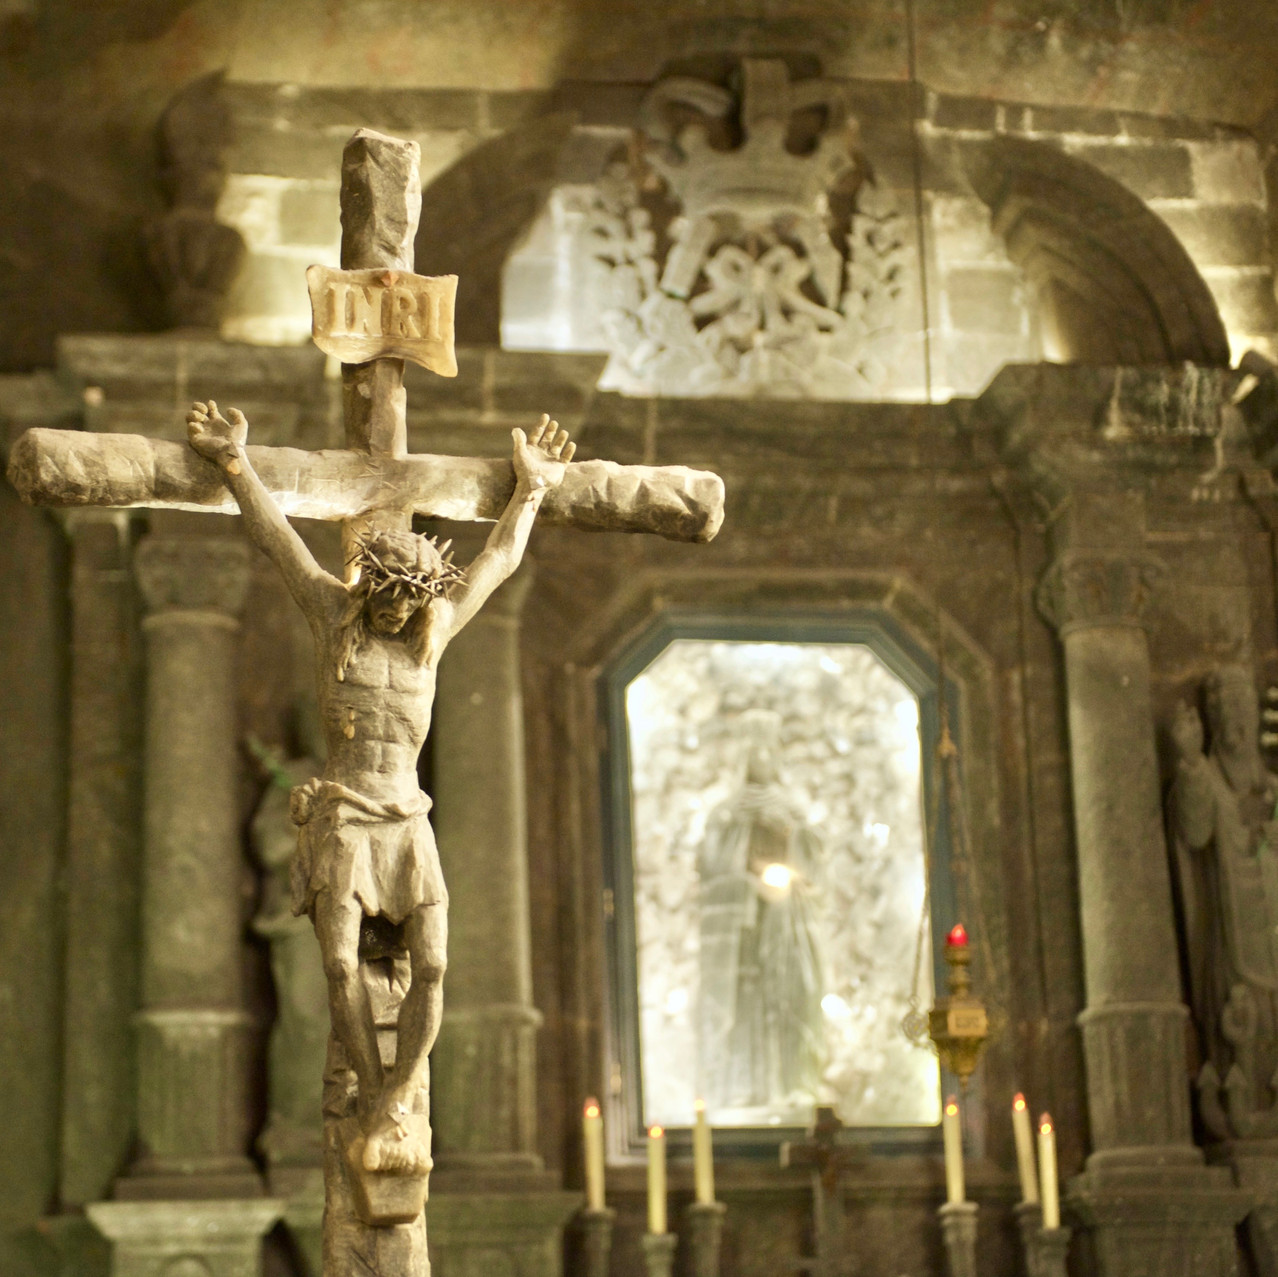 Travel photography of a salt sculpture of Jesus on the cross in the St Kinga Chapel